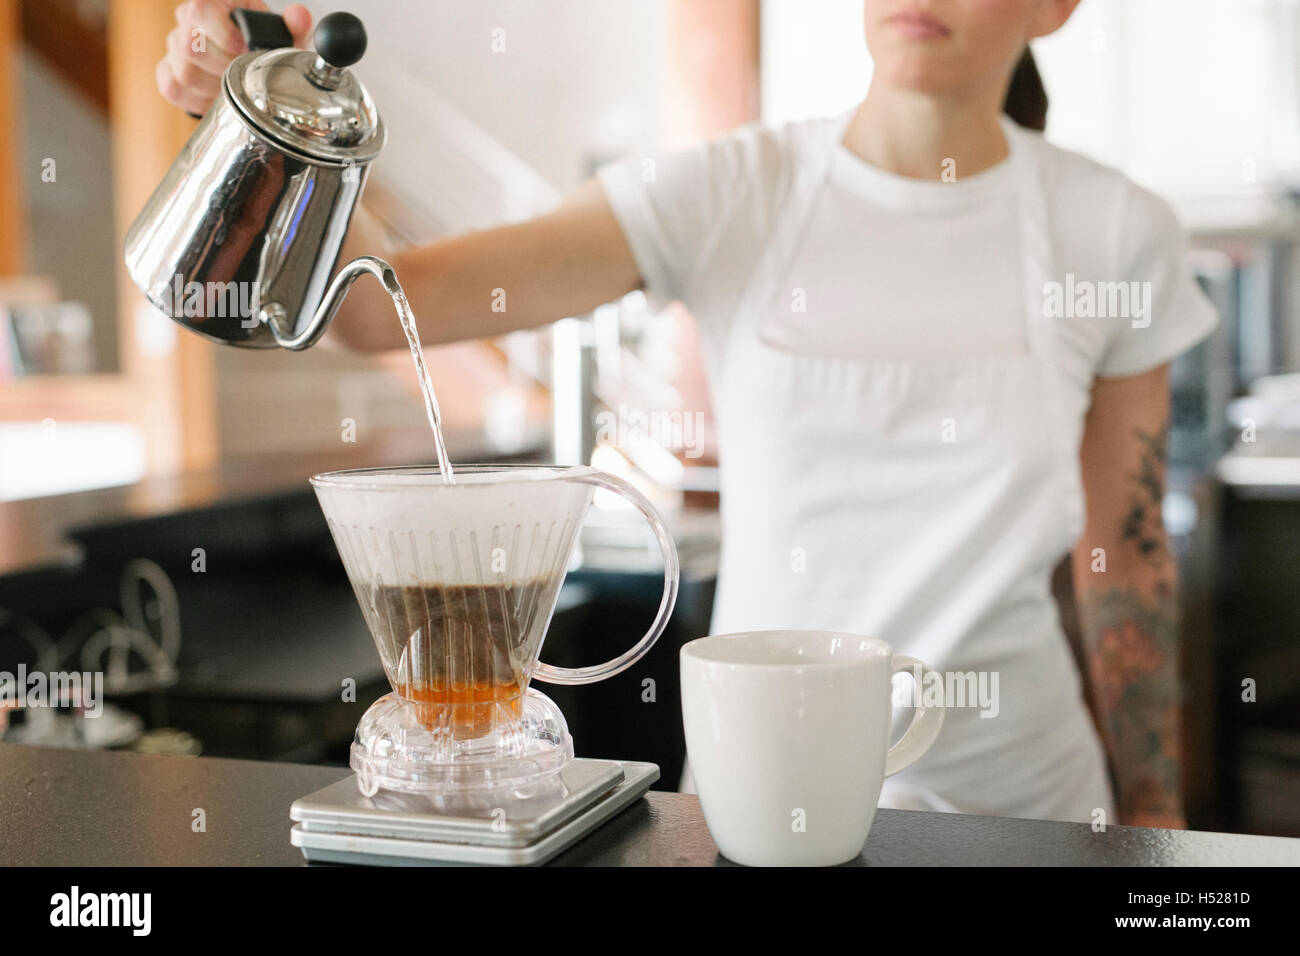 Woman wearing a white apron in a coffee shop, making filter coffee. - Stock Image